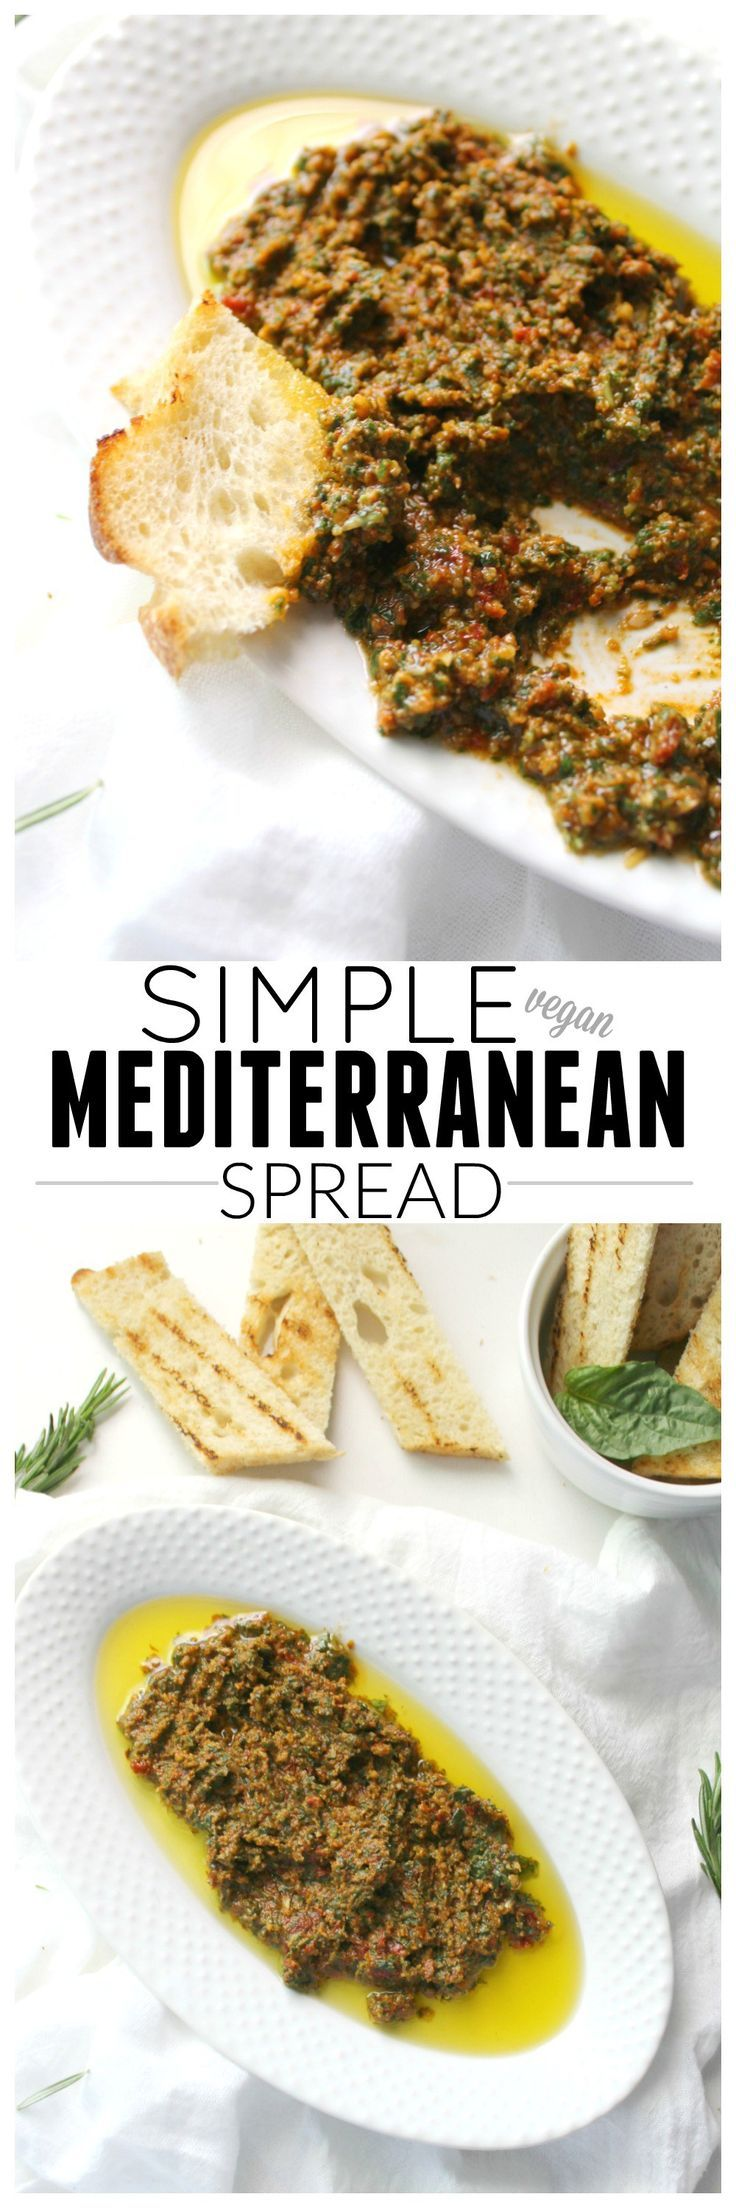 This Simple Vegan Mediterranean Spread is filled with fresh herbs and sun-dried tomatoes and can be served on sandwiches, as a dip or even with pasta | http://ThisSavoryVegan.com